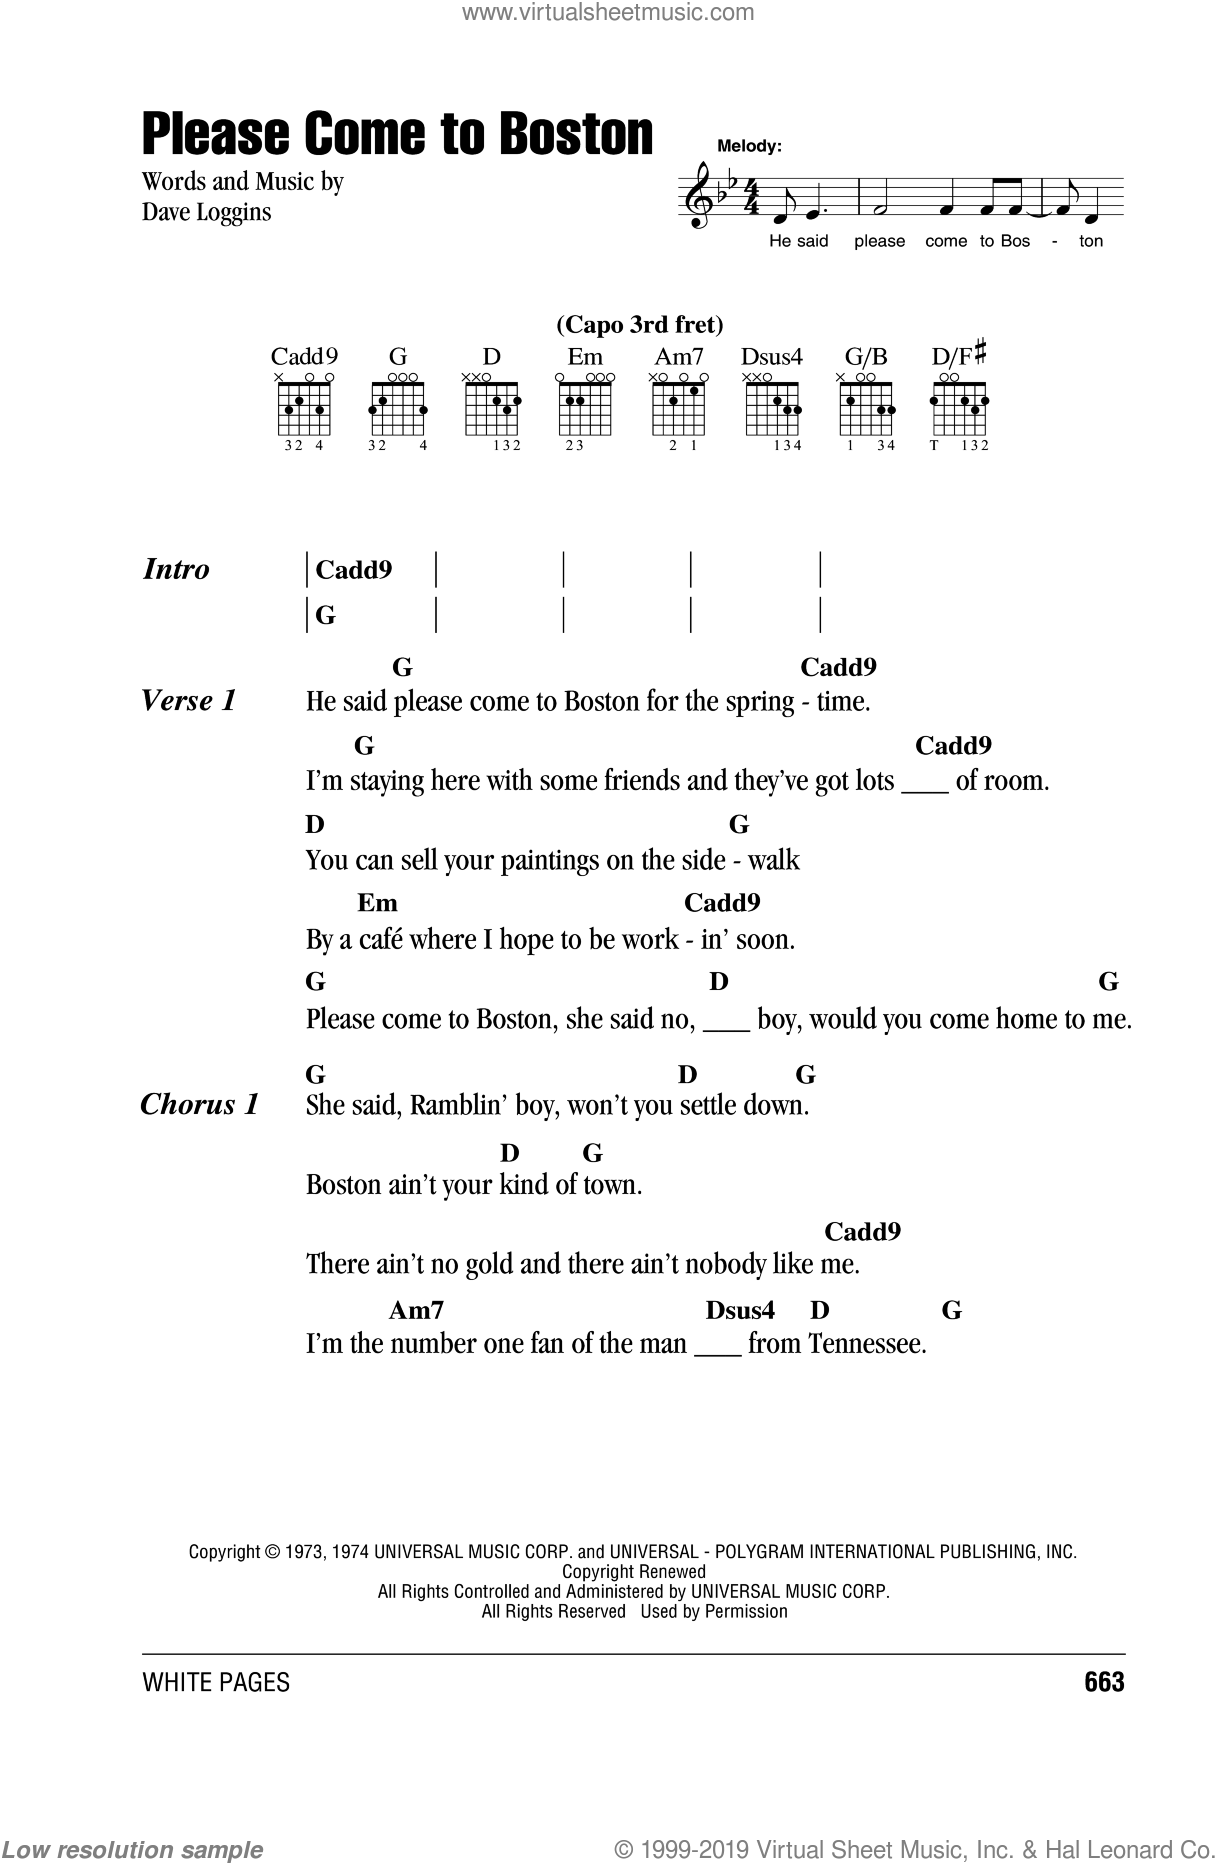 Please Come To Boston sheet music for guitar (chords) by Dave Loggins